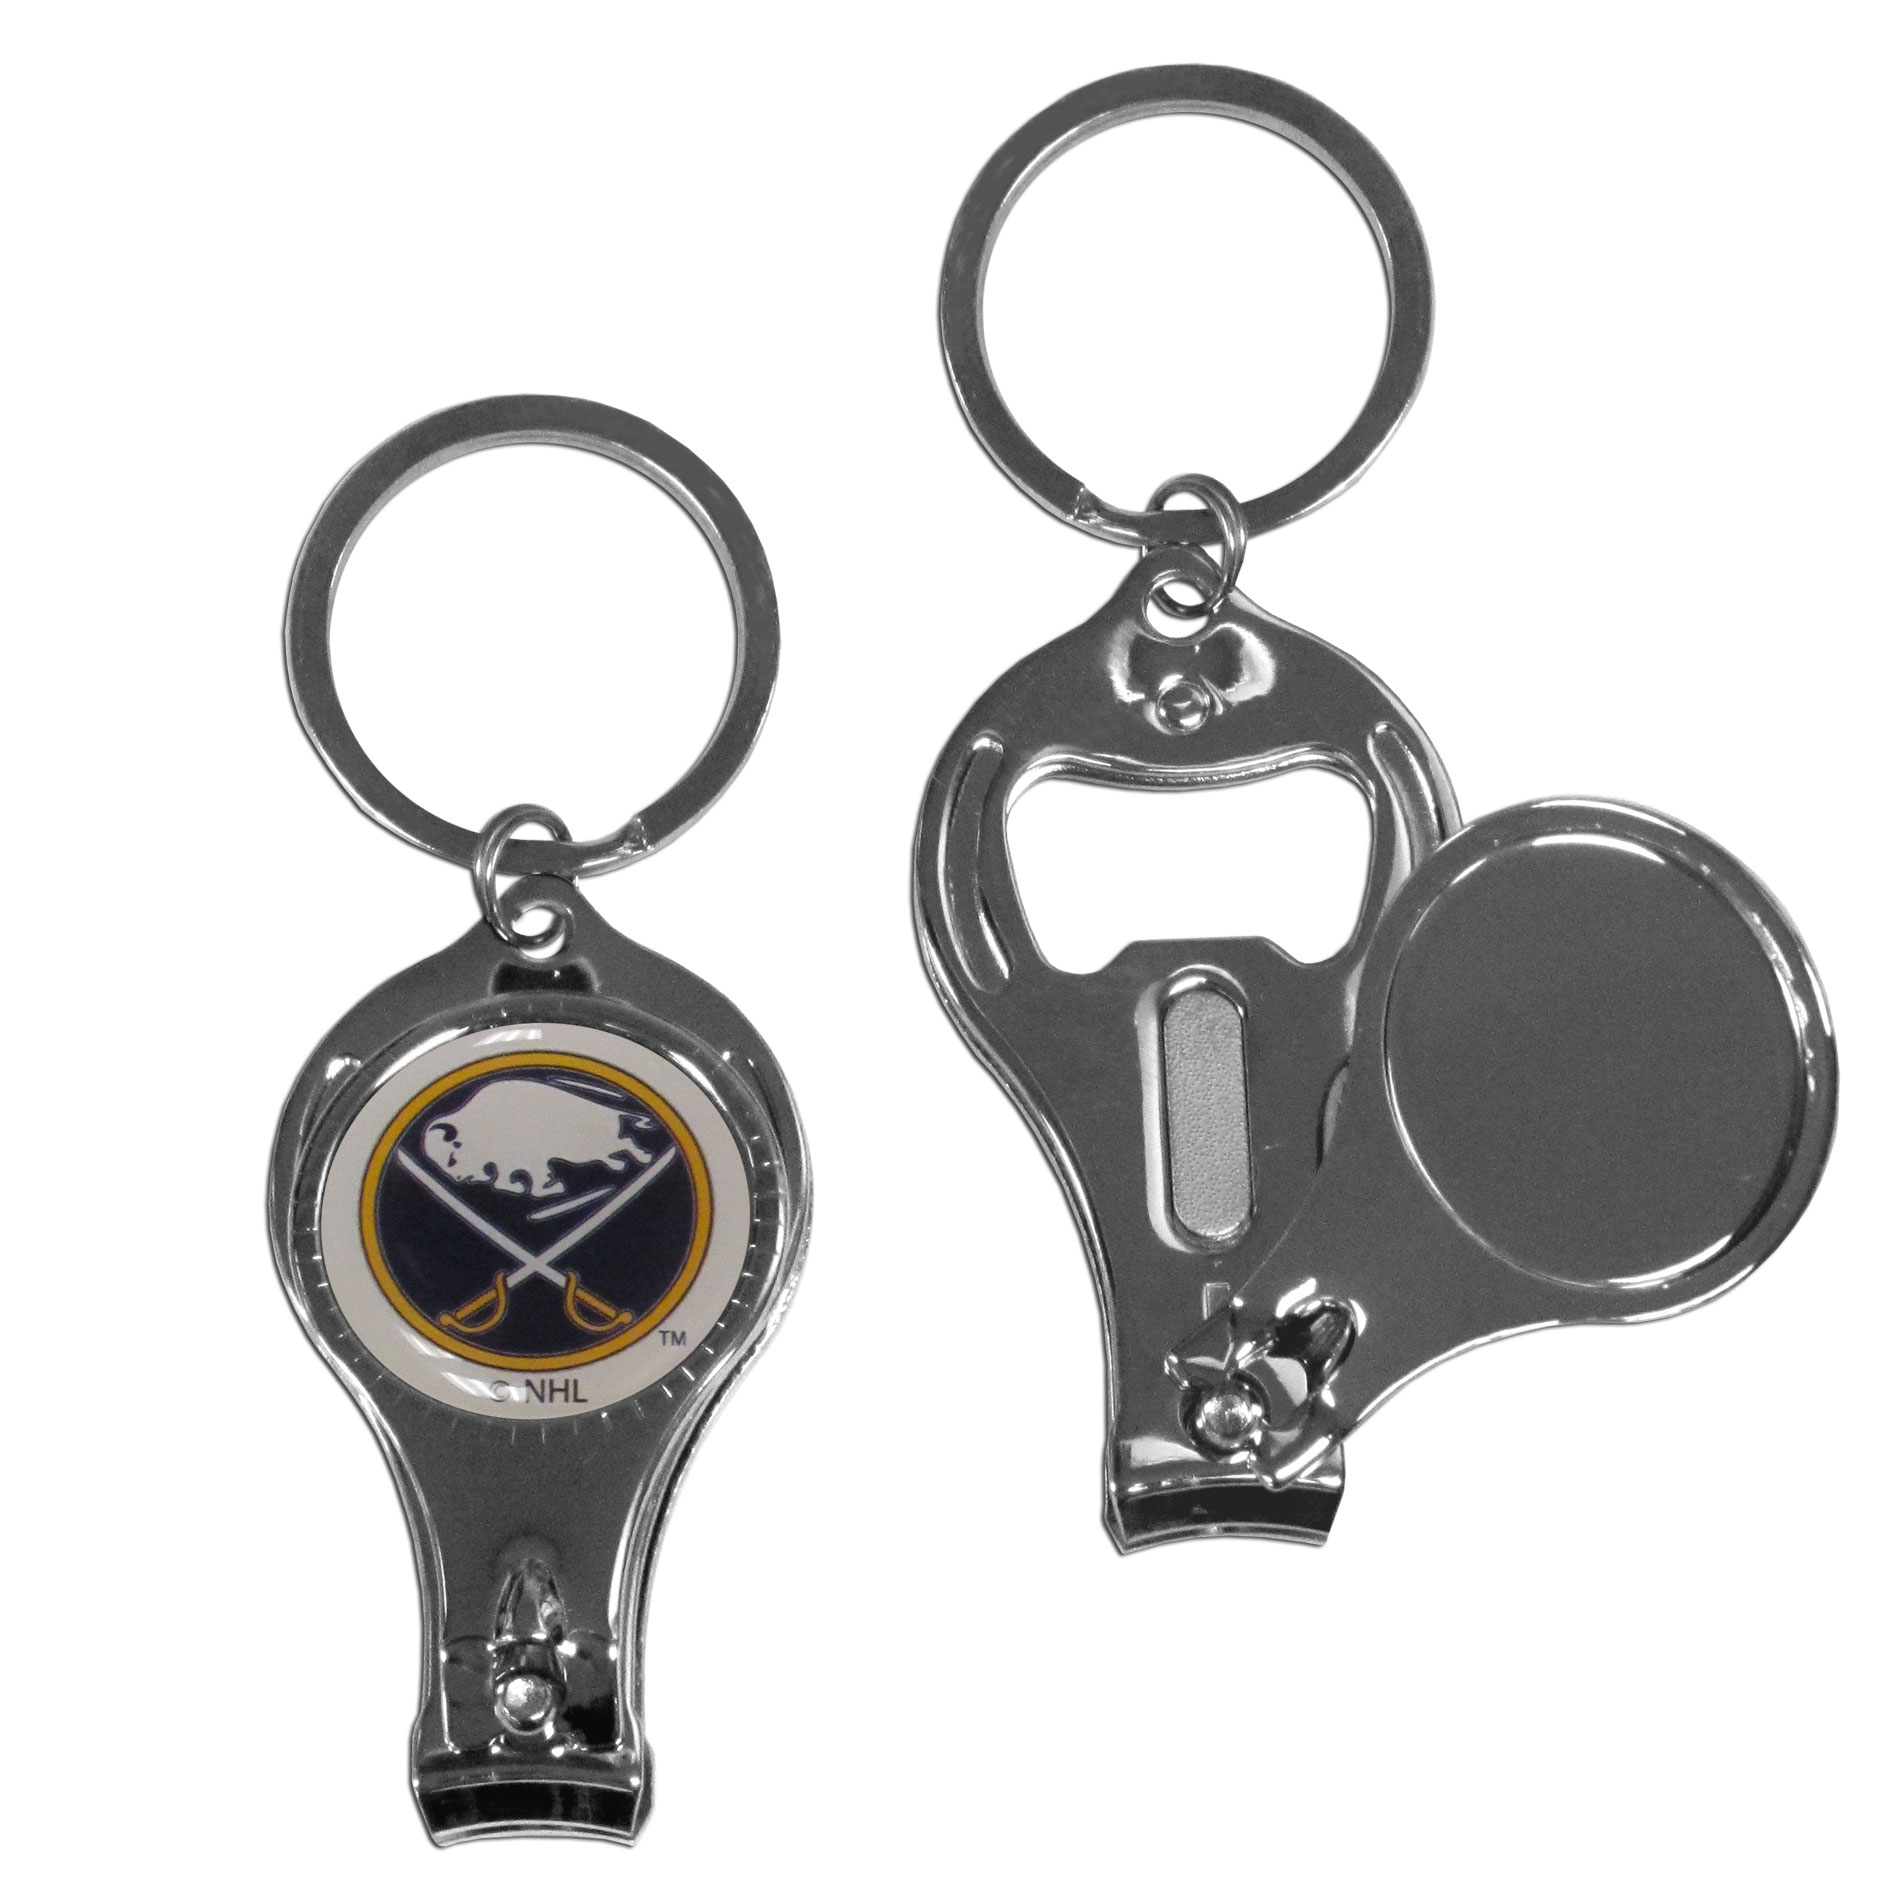 Buffalo Sabres Nail Care Key Chain - This unique NHL Buffalo Sabres Nail Care Key Chain has 3 great functions! The Buffalo Sabres Nail Care Key Chain opens to become a nail clipper, when open you can access the nail file pad plus the Buffalo Sabres key chain also has a bottle opener. This Buffalo Sabres Nail Care Key Chain features a Buffalo Sabres domed logo. Thank you for visiting CrazedOutSports